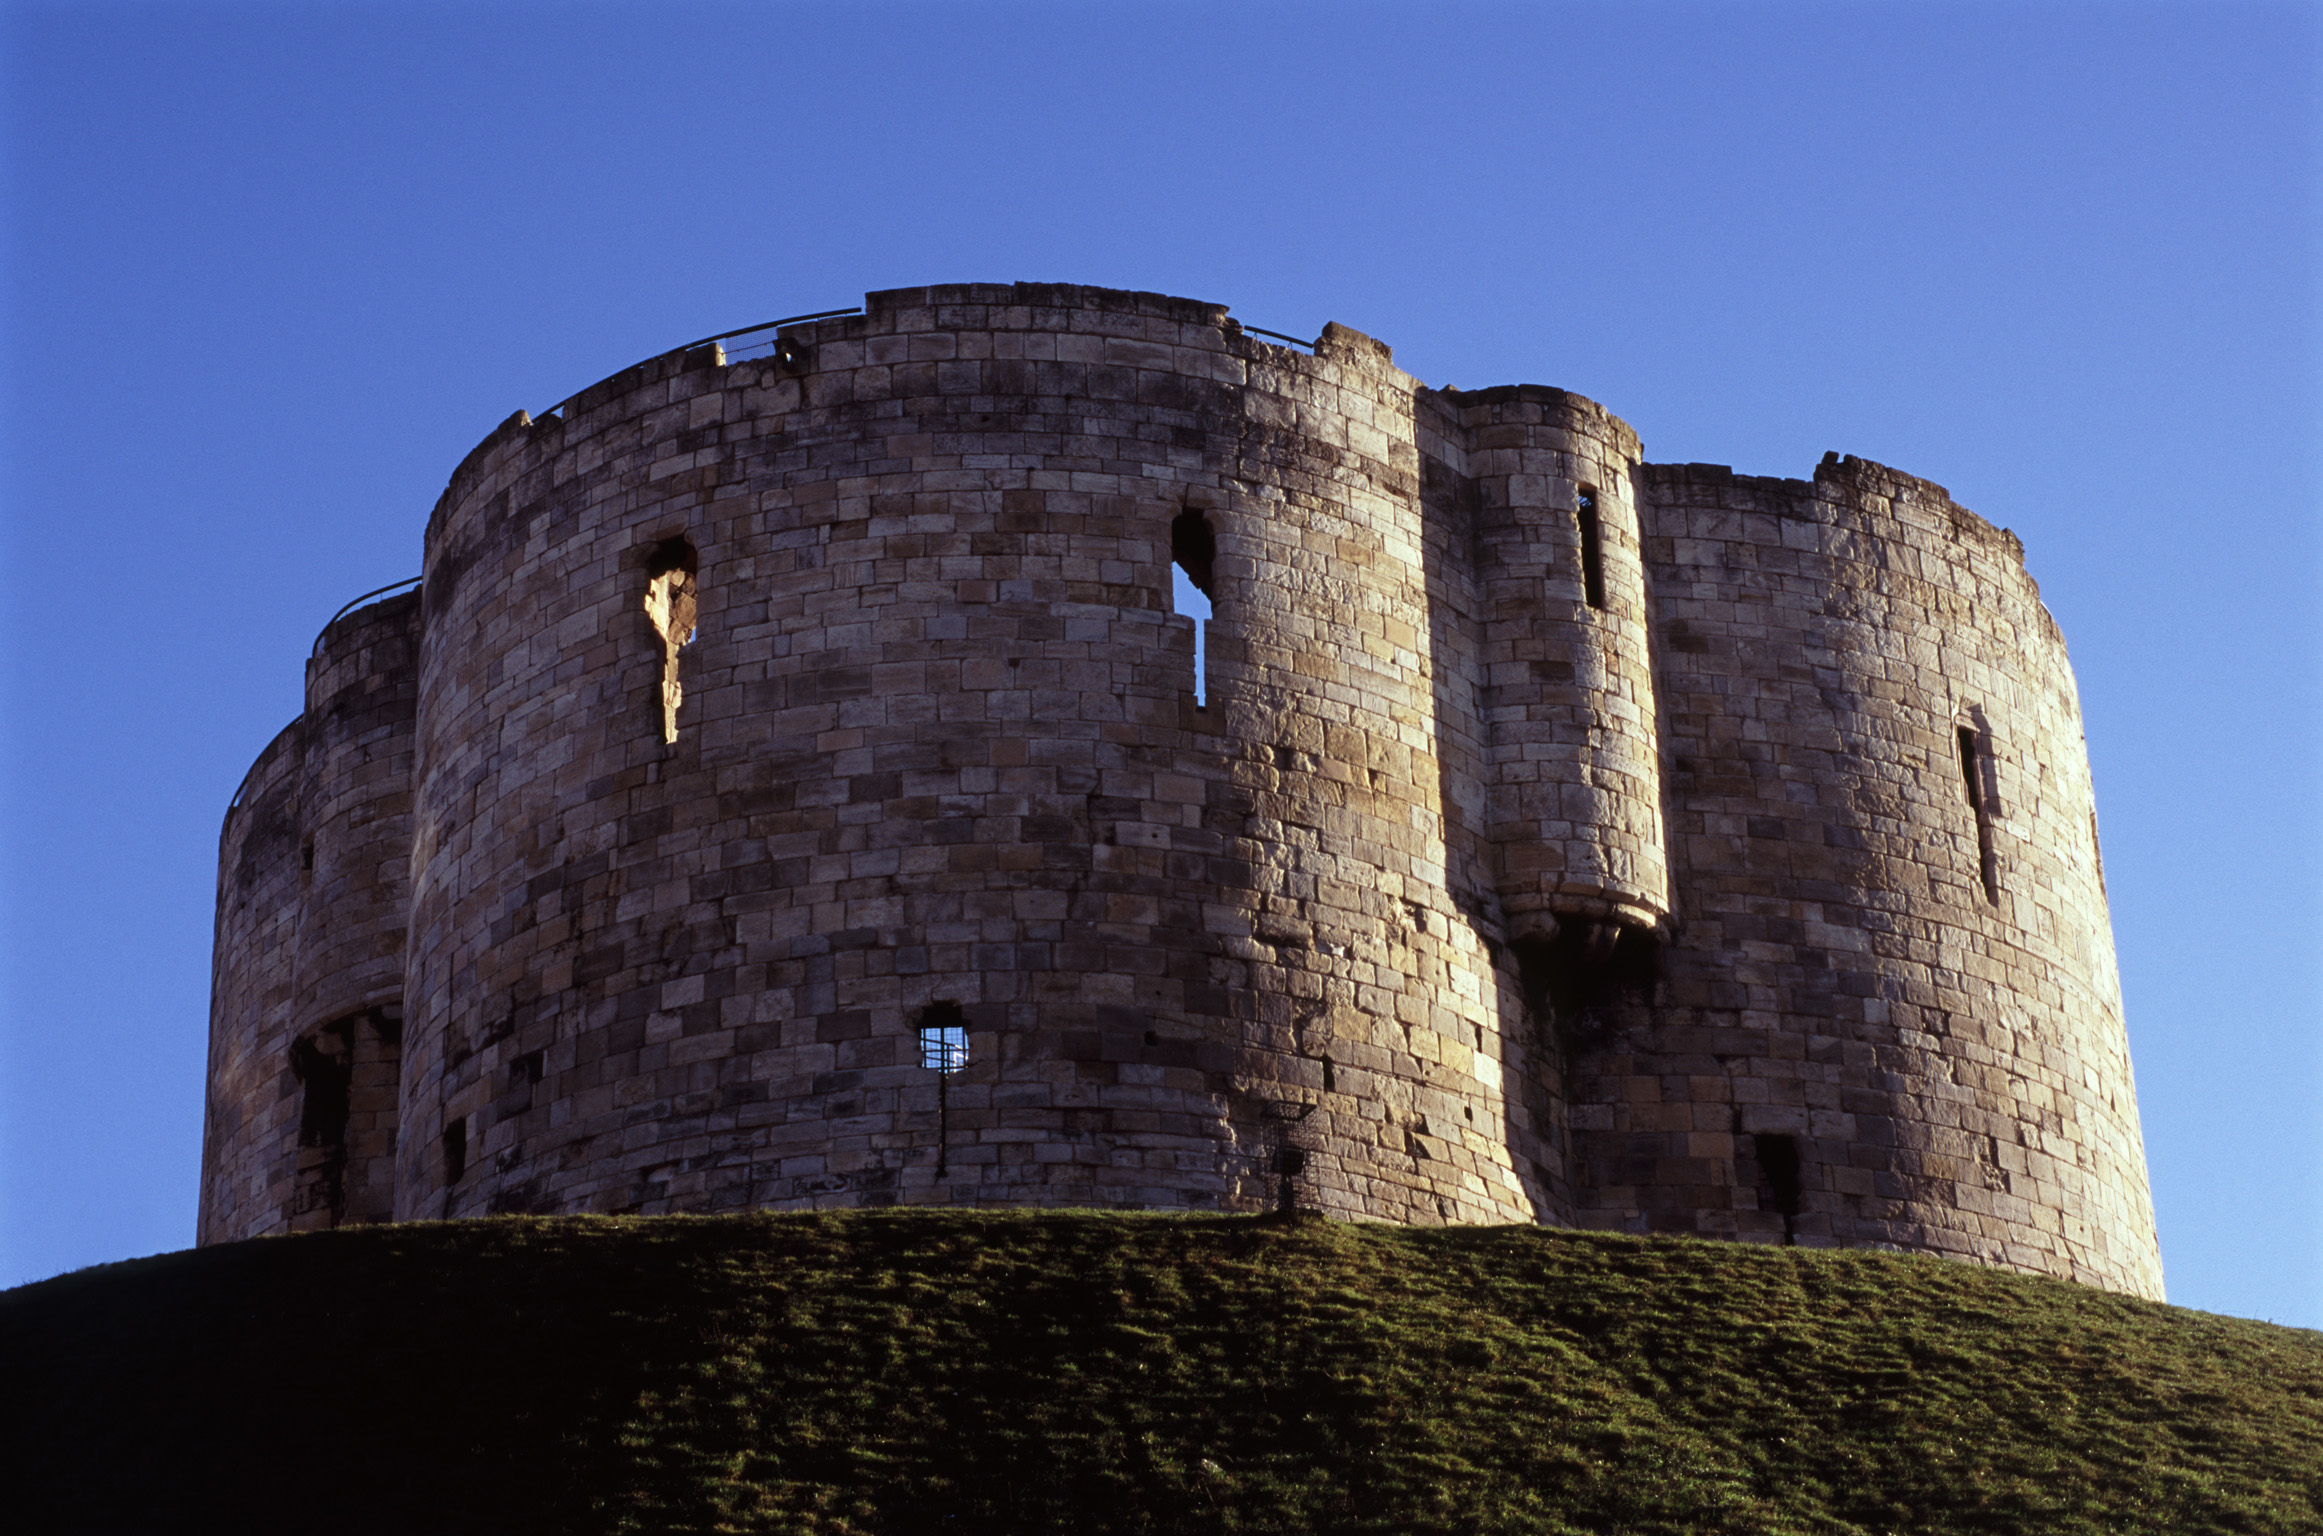 Cliffords tower, York, England